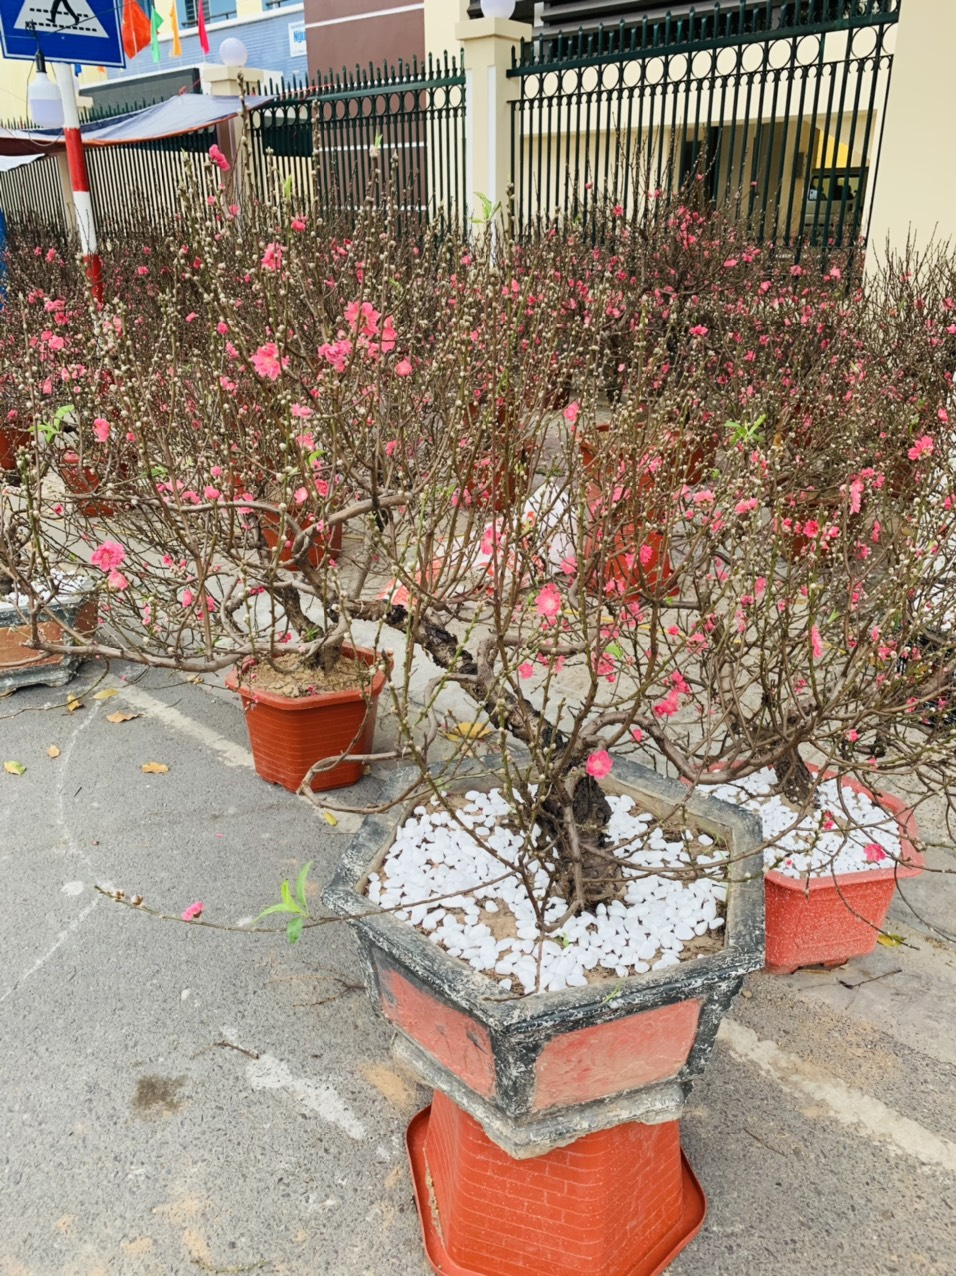 Peach blossom trees transported from northern region are being sold in Nha Trang